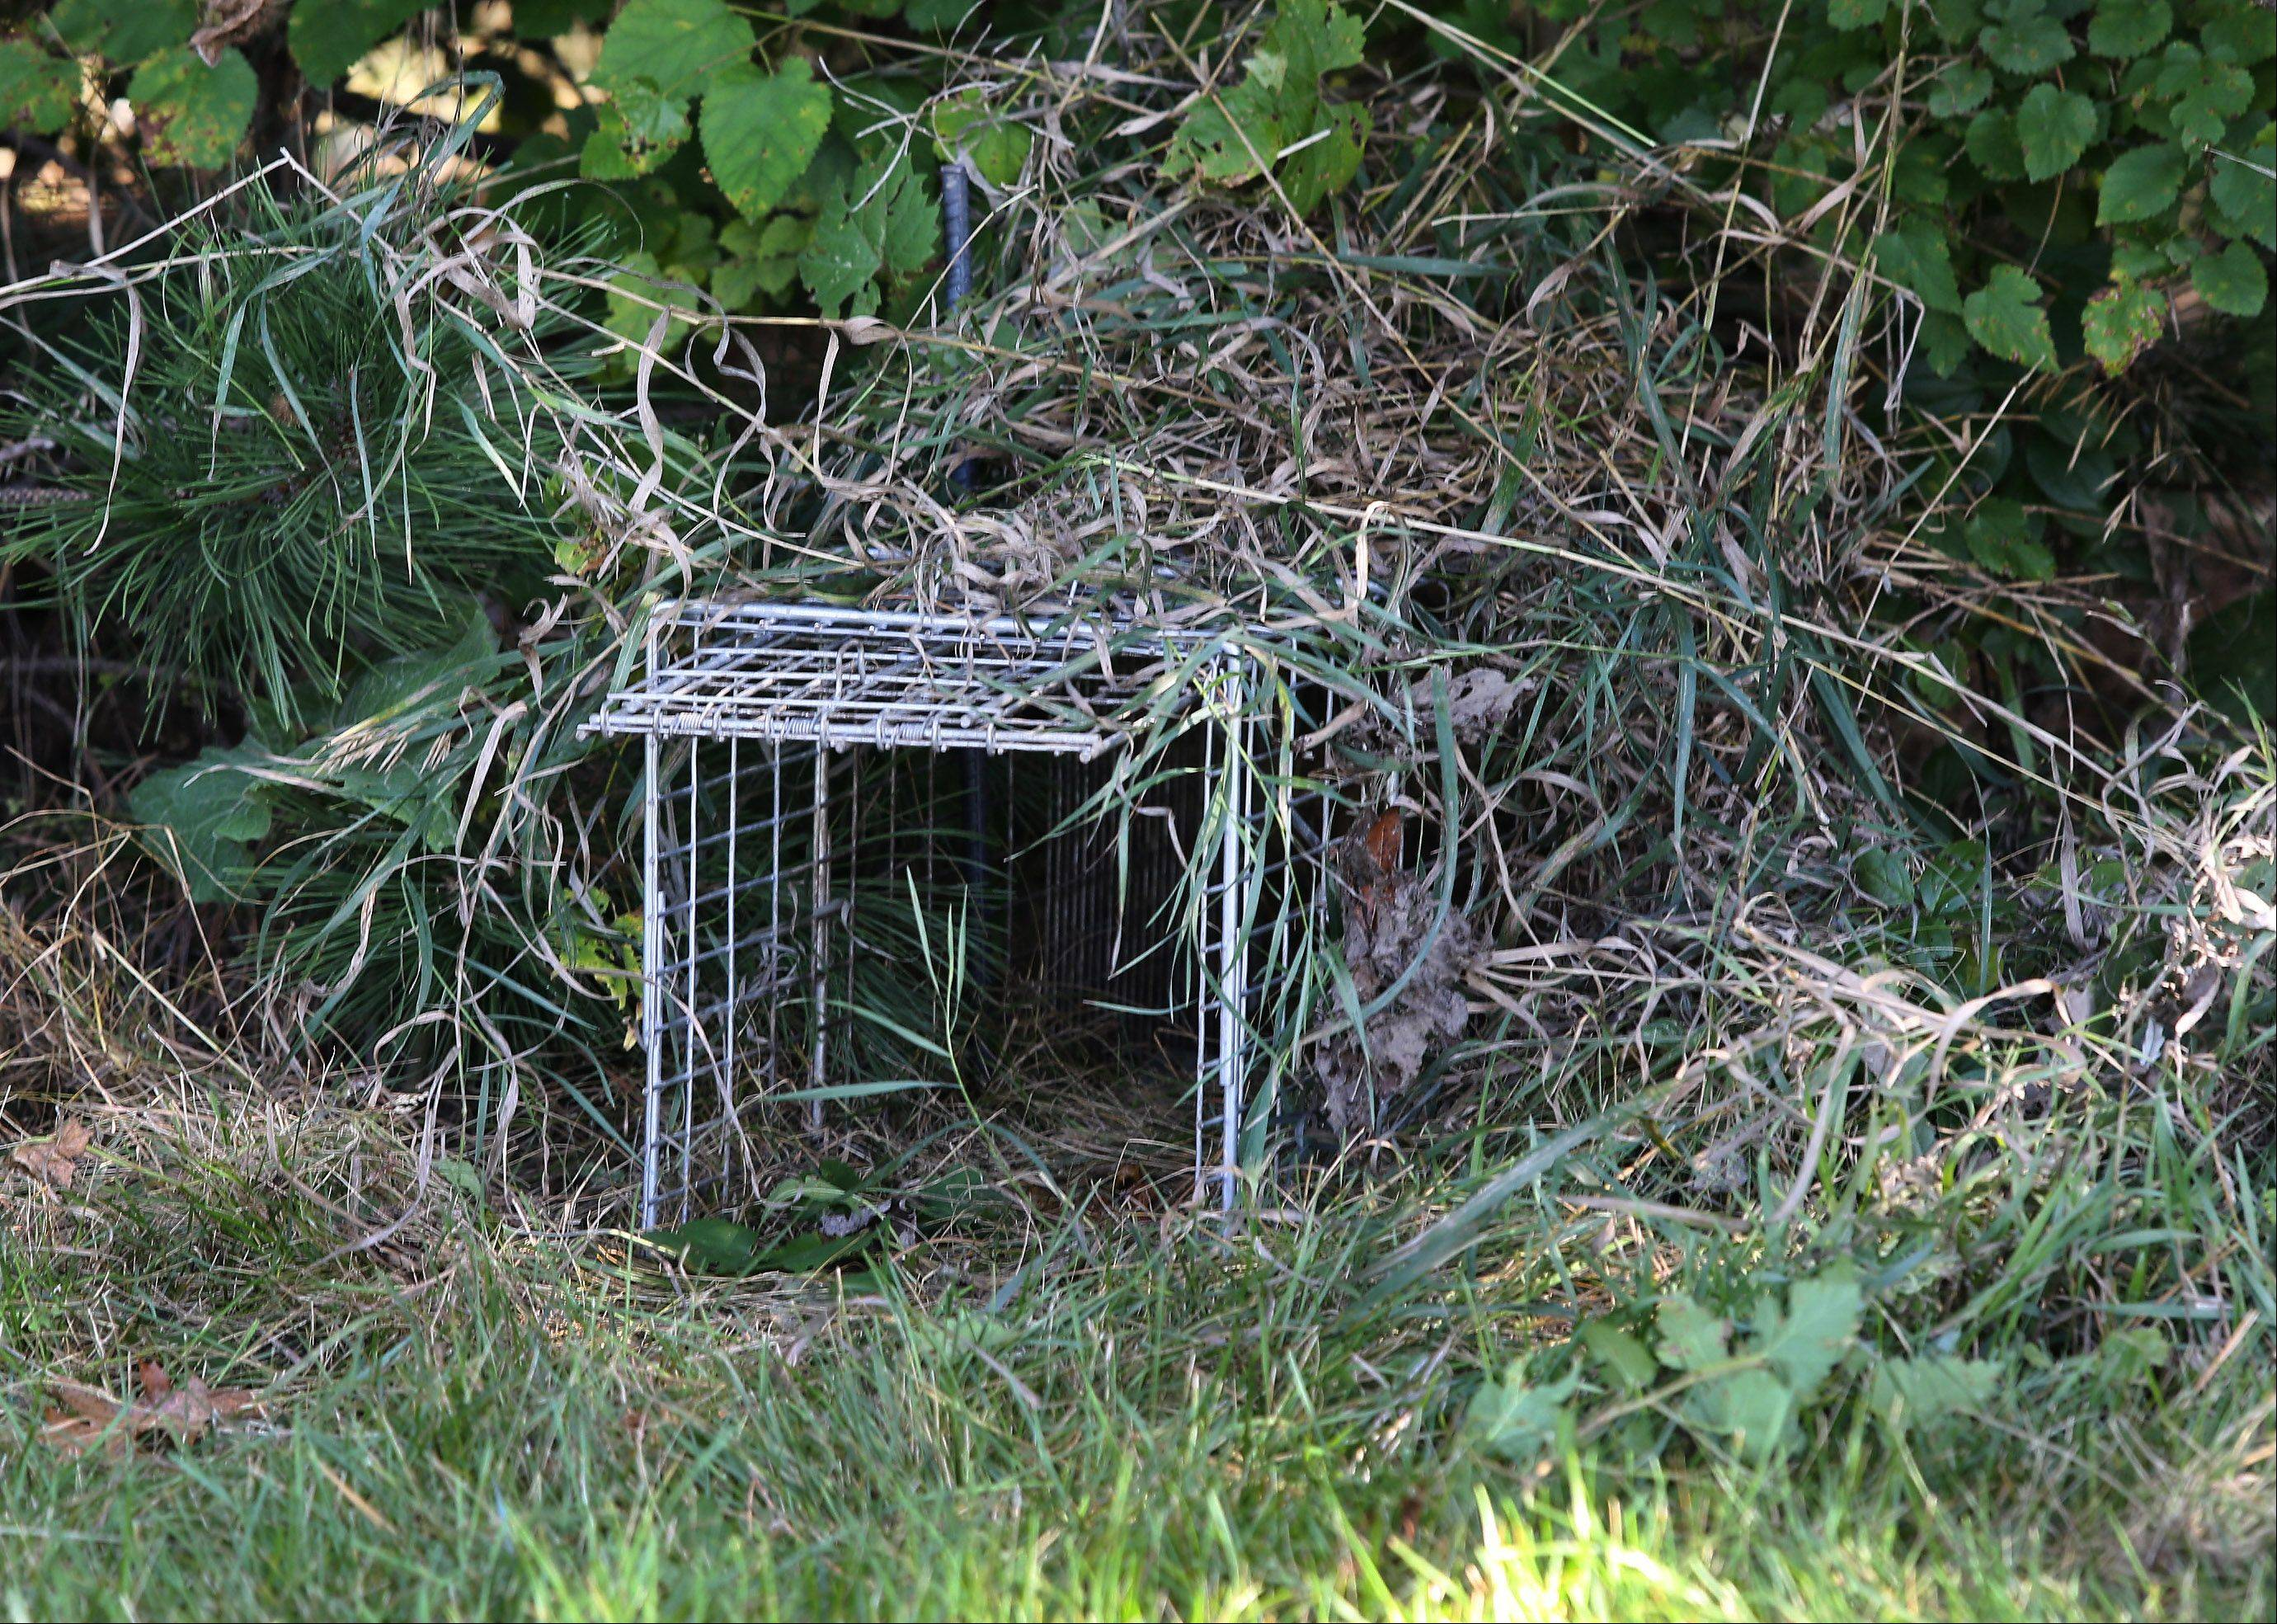 A trap set for skunks by John Dynek of JD's Wildlife Services in Deerpath Park in Vernon Hills on Monday. The village and the Vernon Hills Park District have joined forces to hire the trapper to thin the skunk population in town.